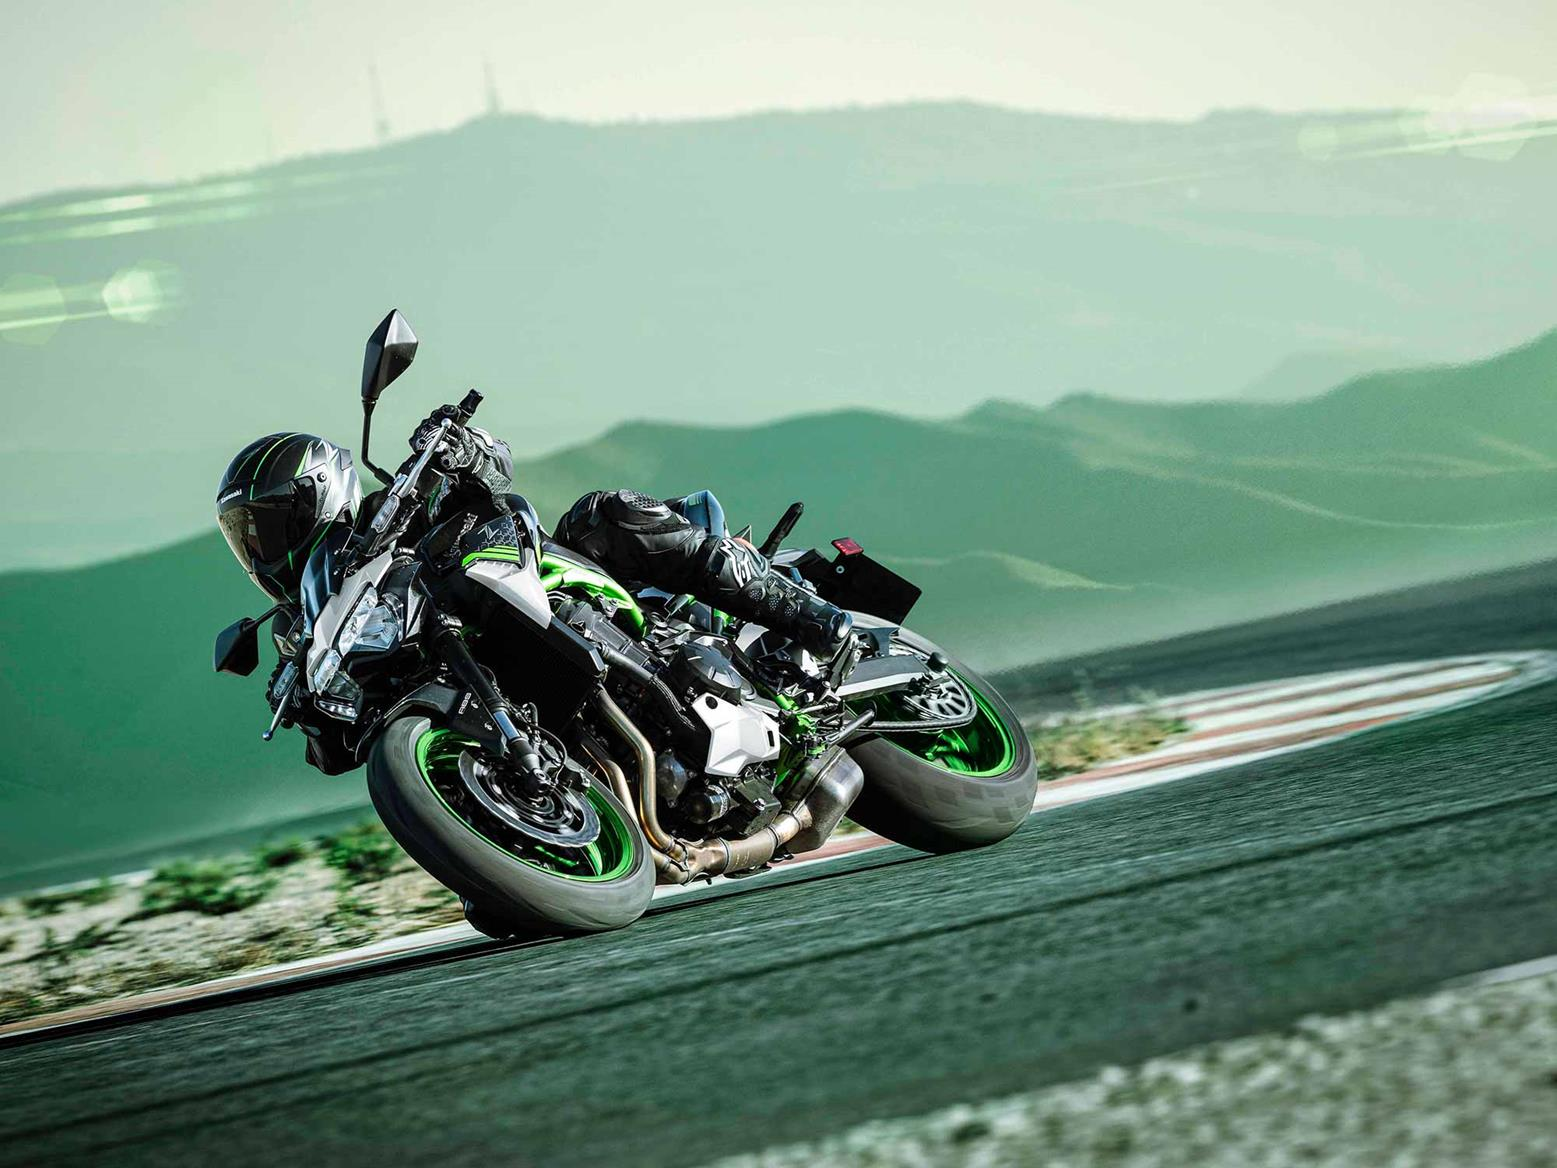 Colour updates announced for 2021 Kawasaki Z900, Vulcan S and Ninja 1000SX